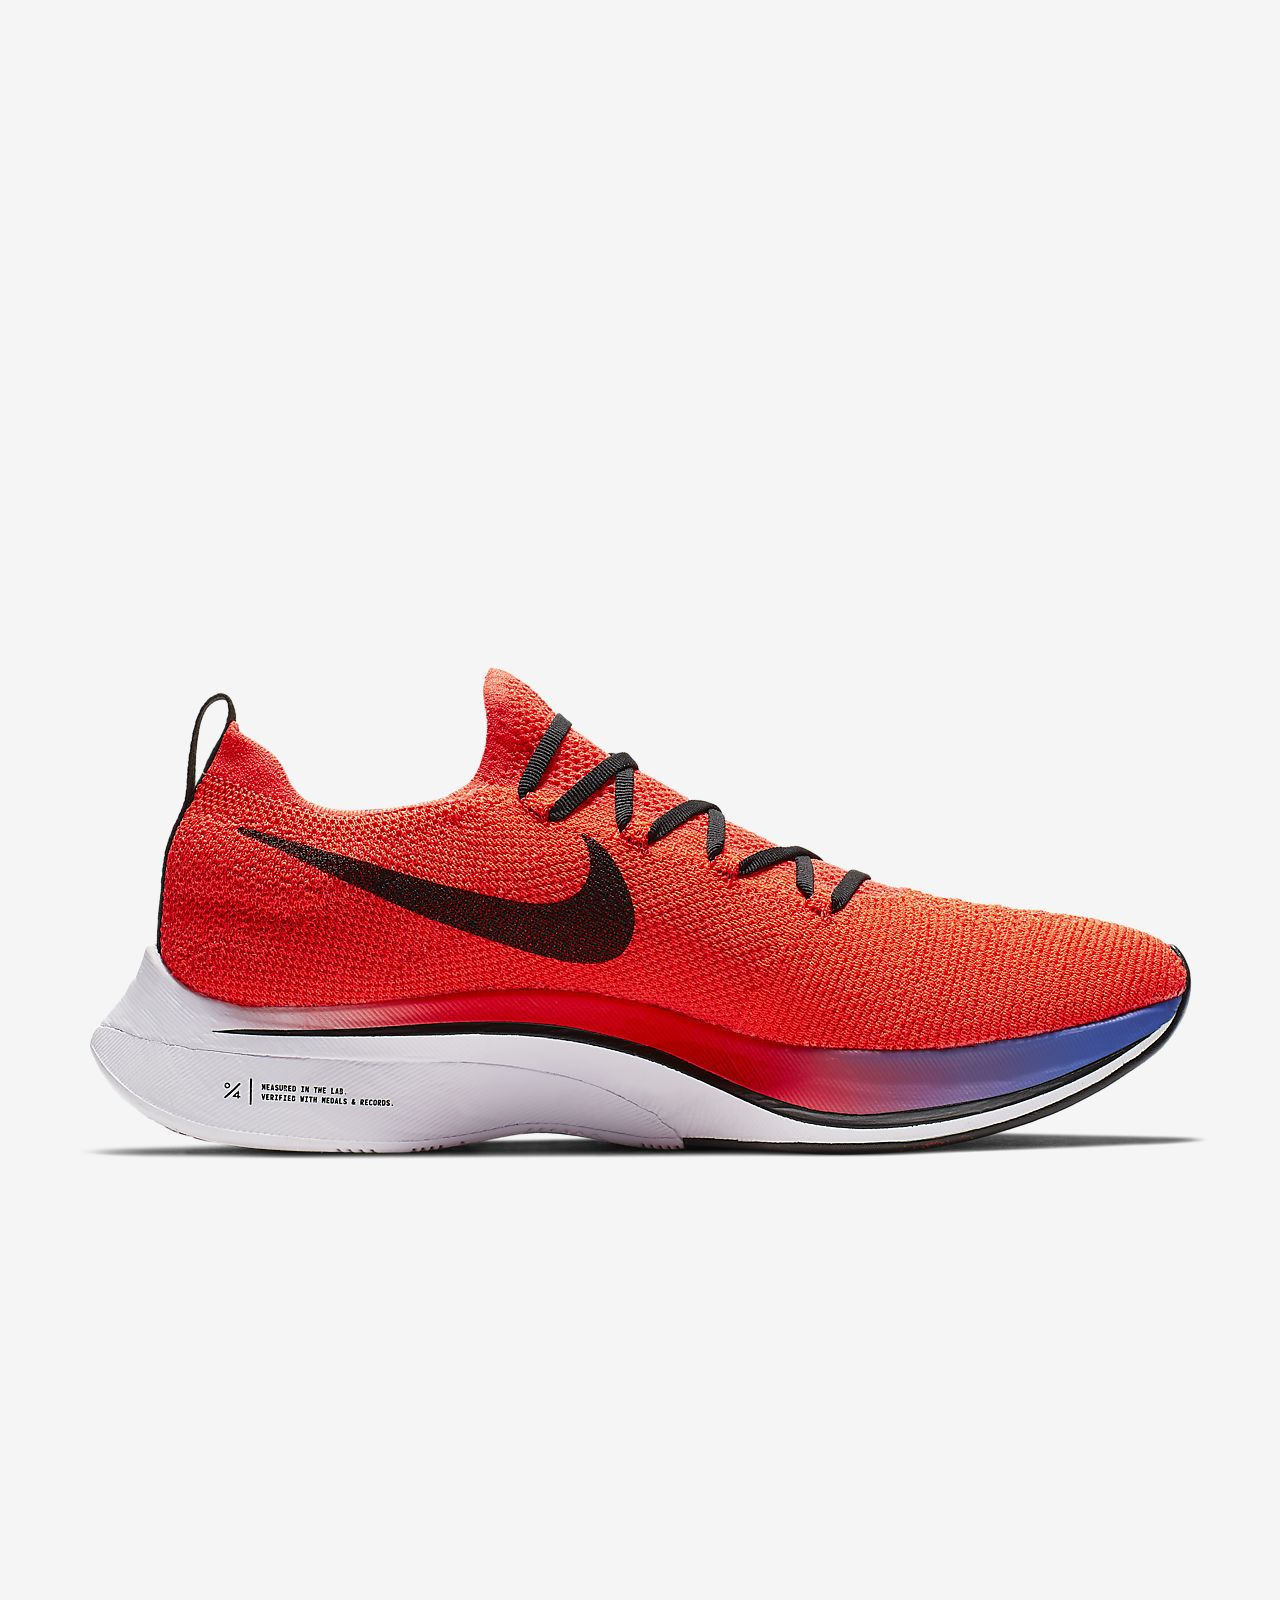 on sale a8804 5546e ... Nike Vaporfly 4% Flyknit Running Shoe